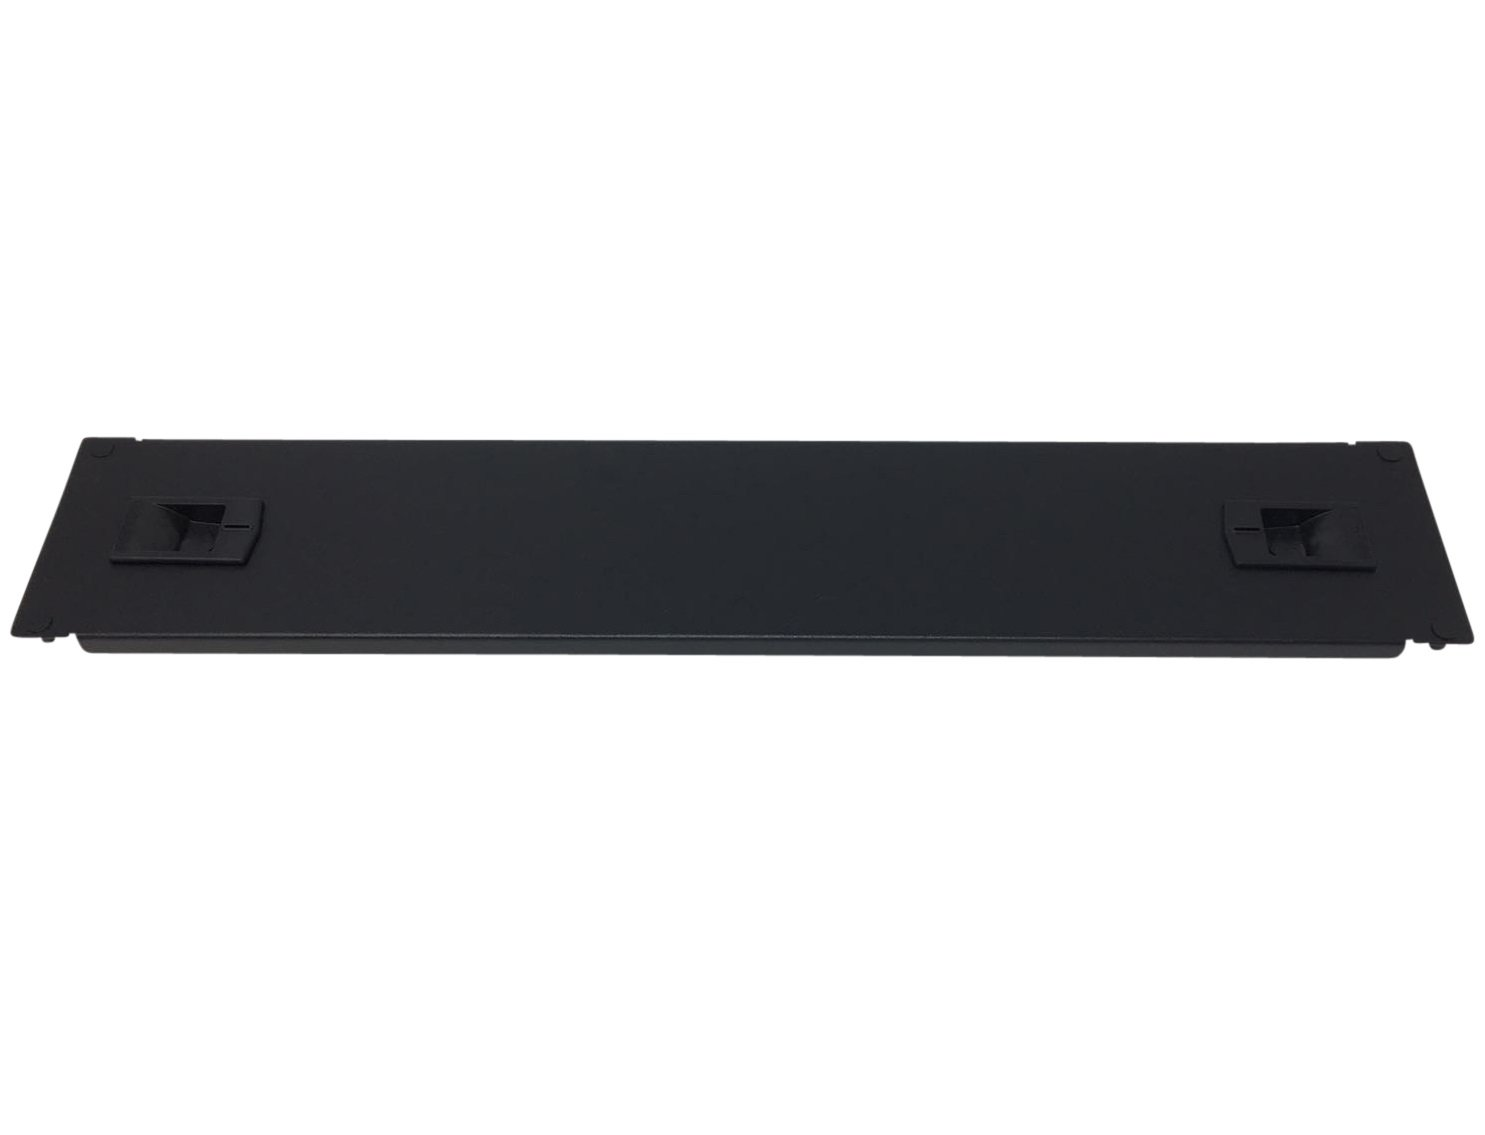 Kenuco 2U Toolless Rackmount Space Spacer Blank Rack Mount Filler Panel for IT Racks and Cabinets, Solid Black, 19''